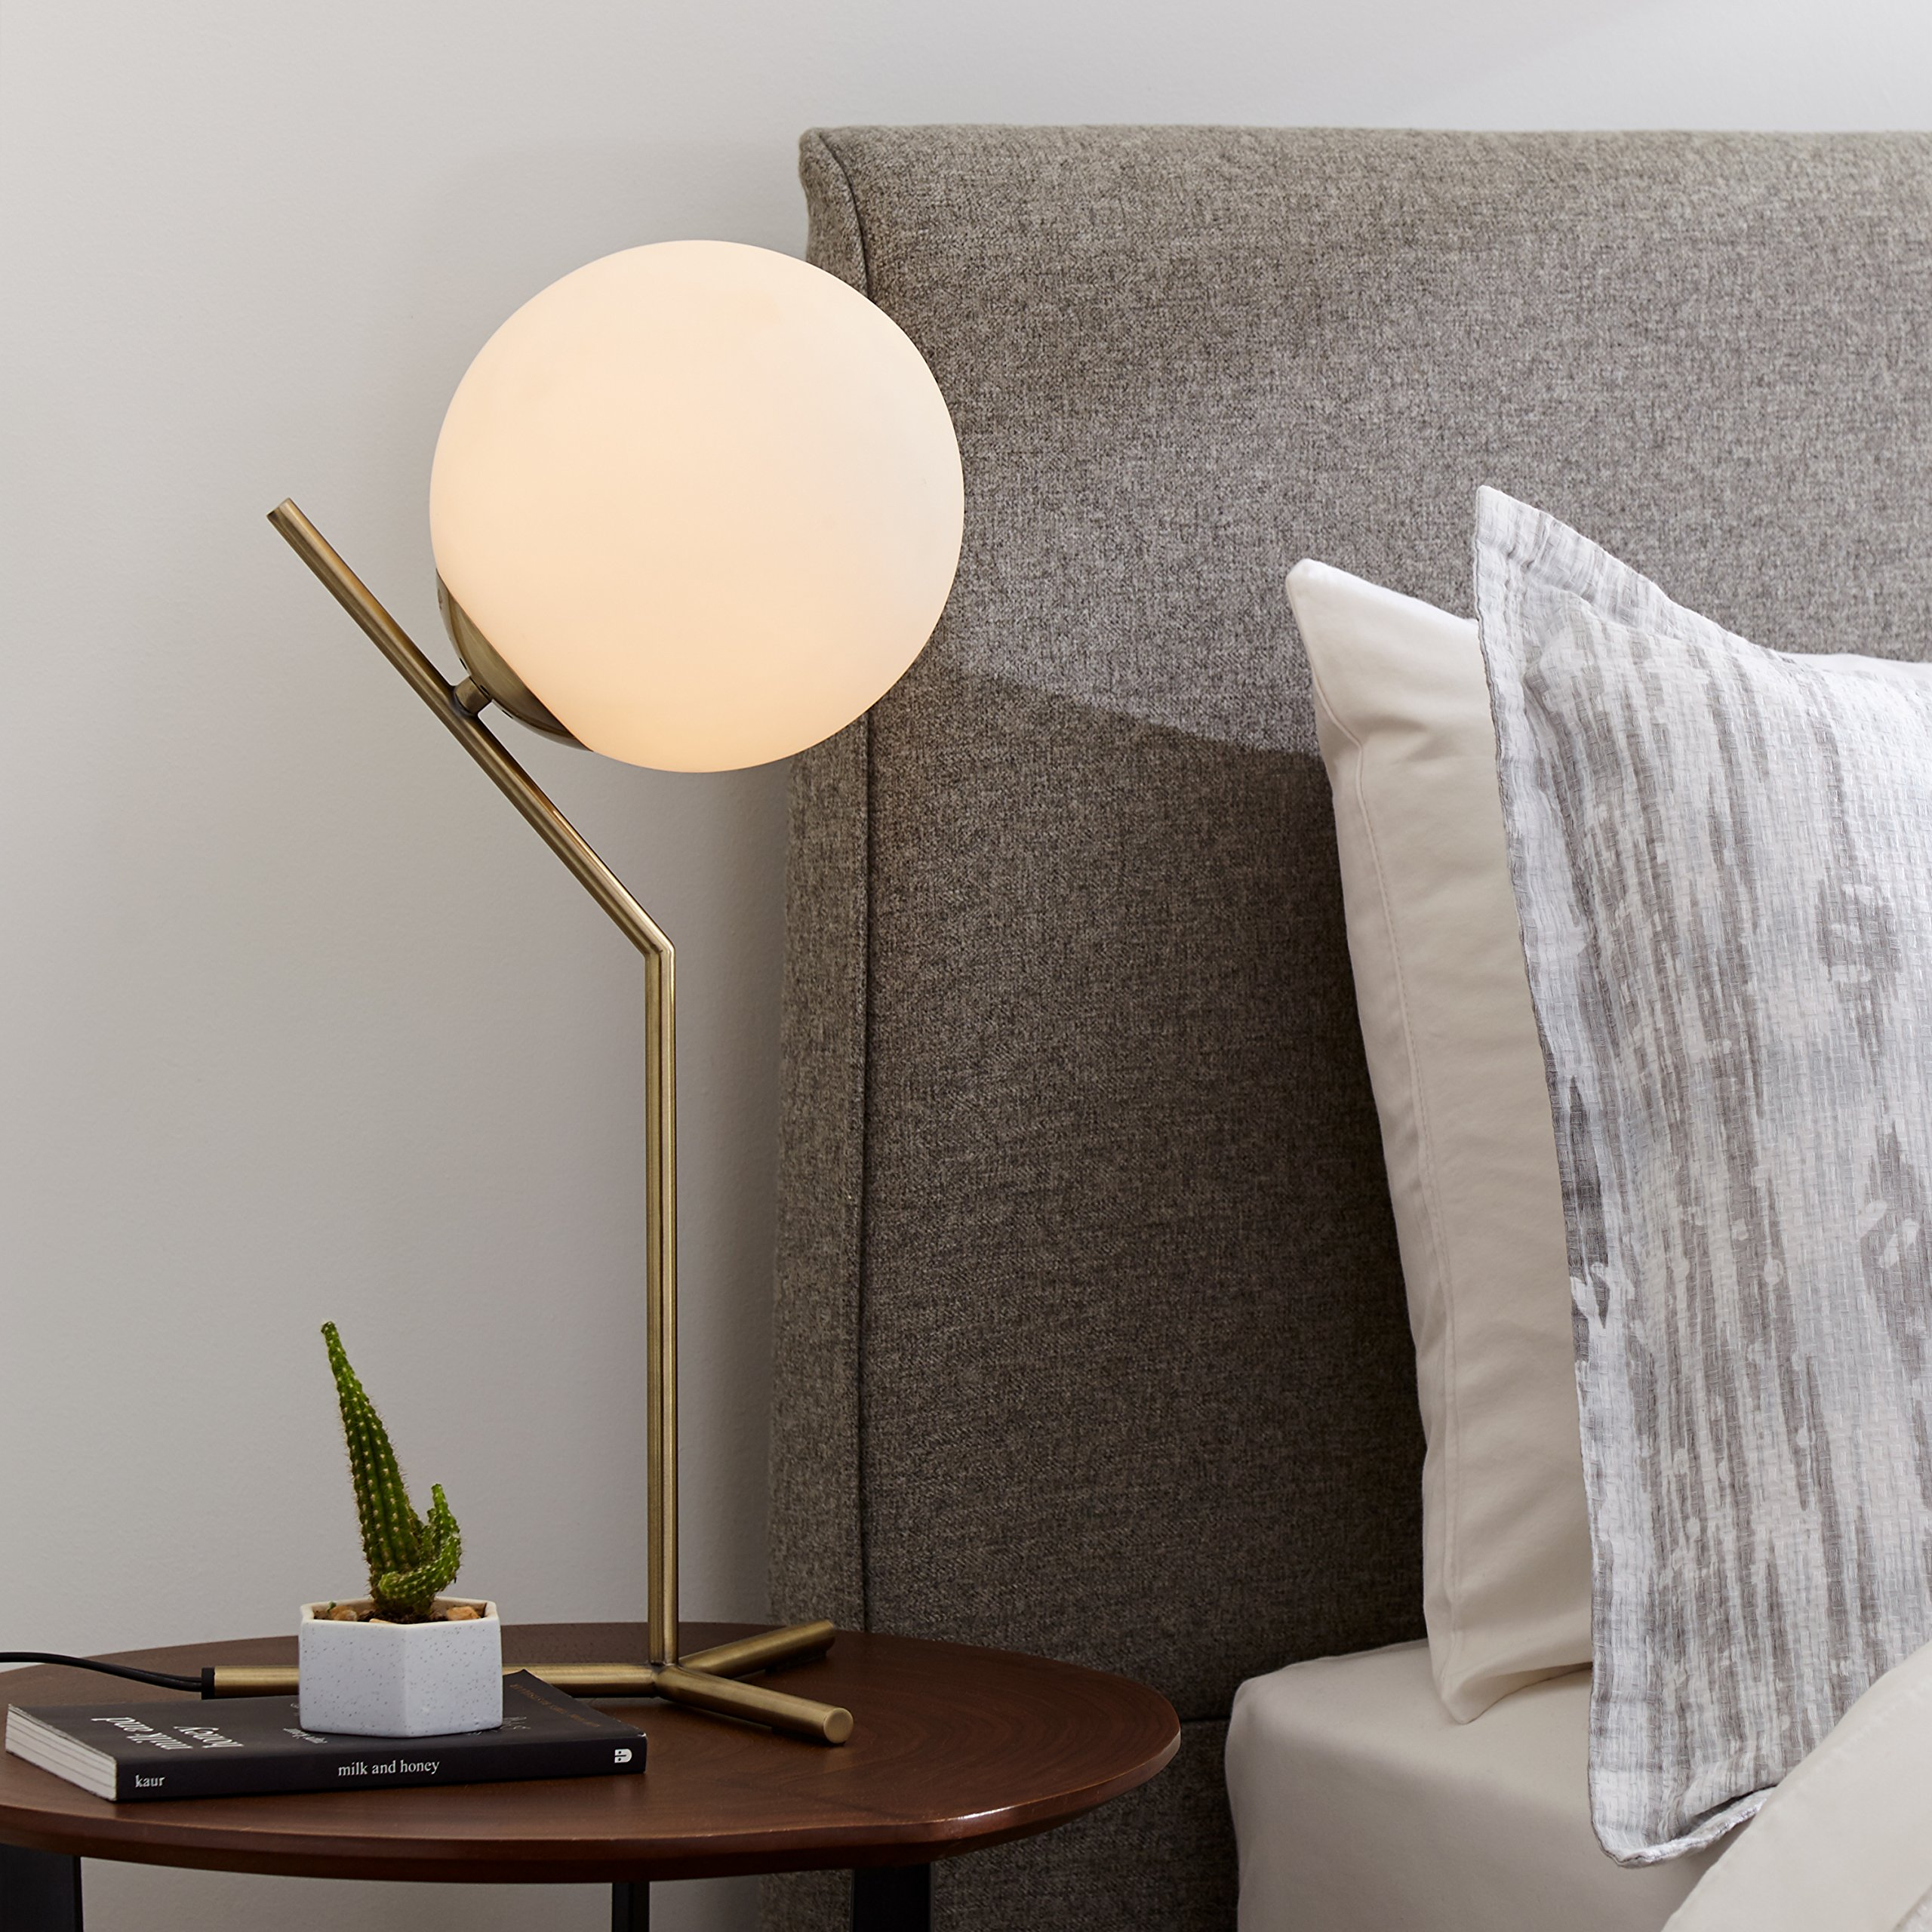 Rivet Glass Ball and Angled Metal Table Lamp with Bulb, 21.5''H, Brass by Rivet (Image #3)